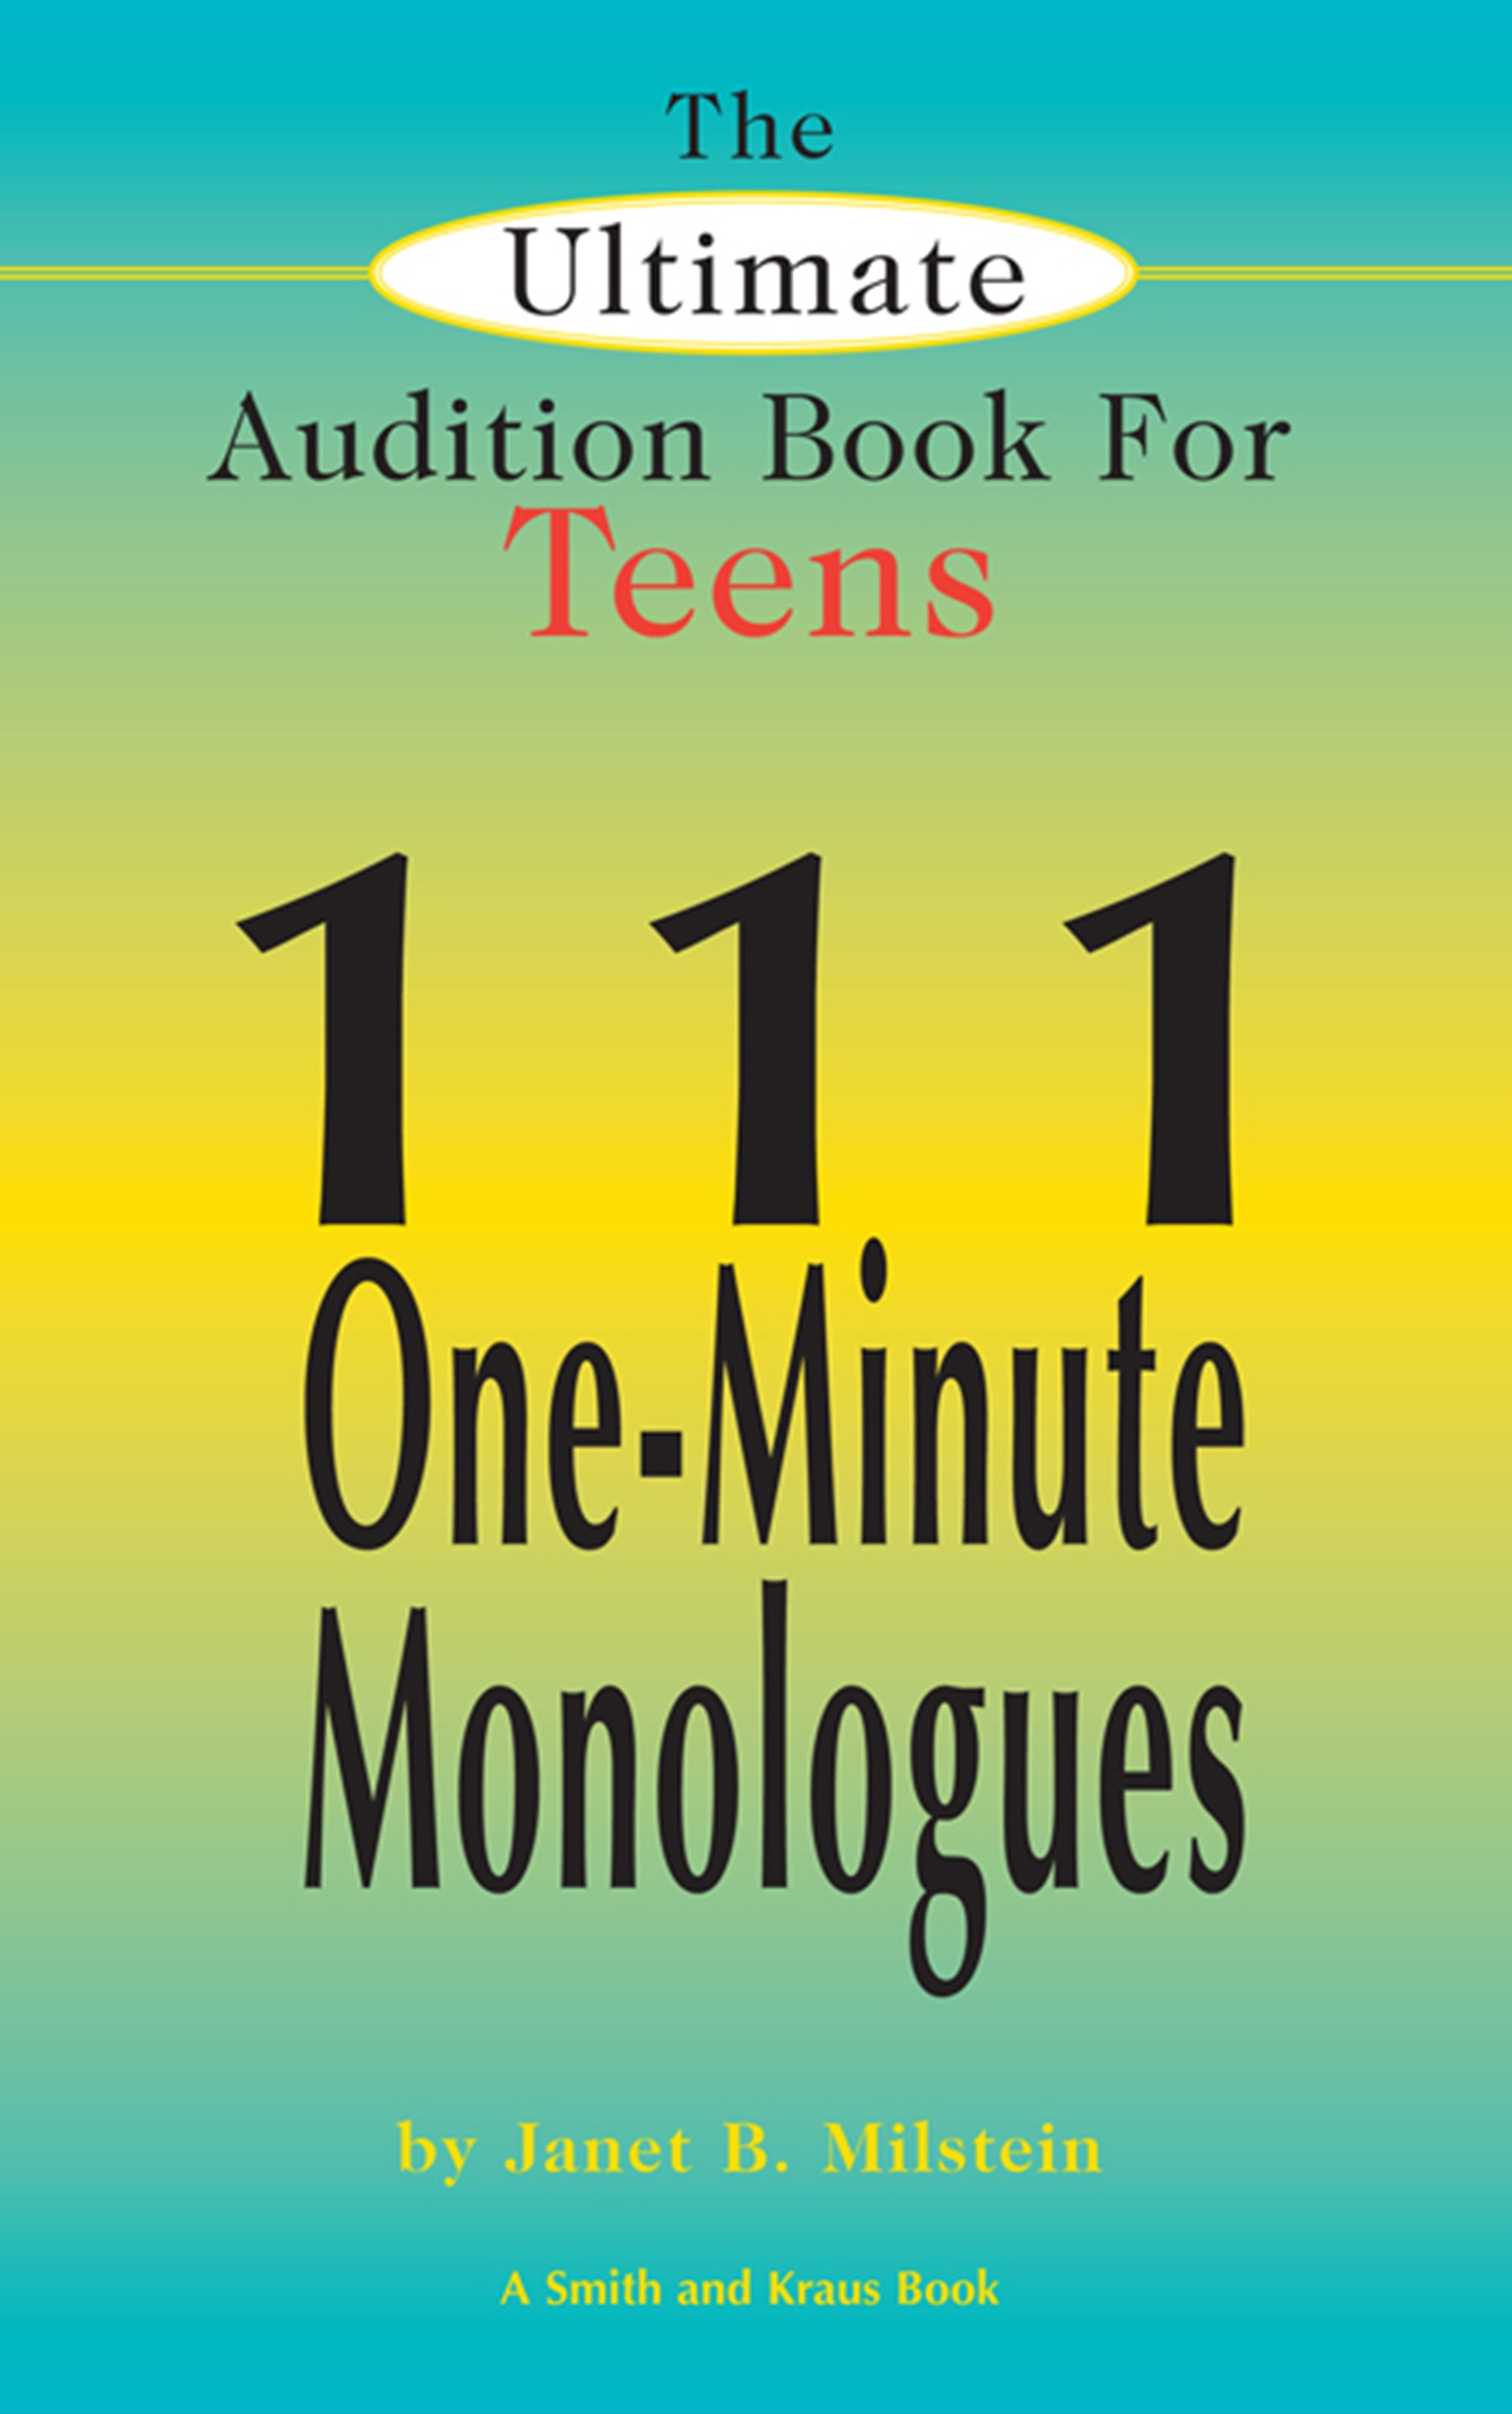 The Ultimate Audition Book for Teens, Vol 1: 111 One-Minute Monologues